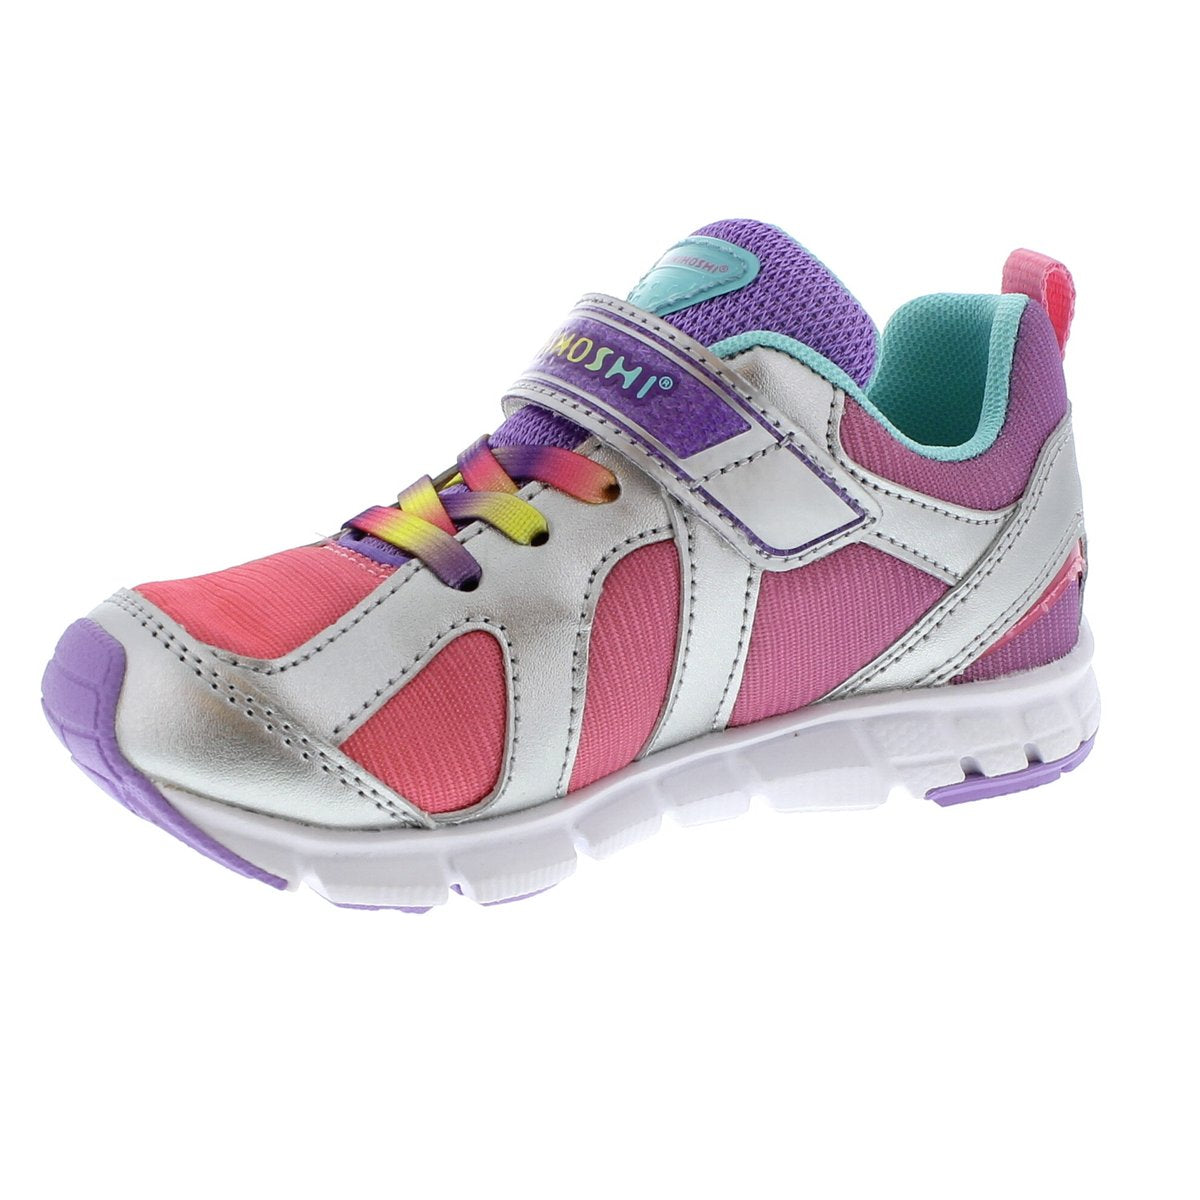 Child Tsukihoshi Rainbow Sneaker in Silver/Lavender from the front view